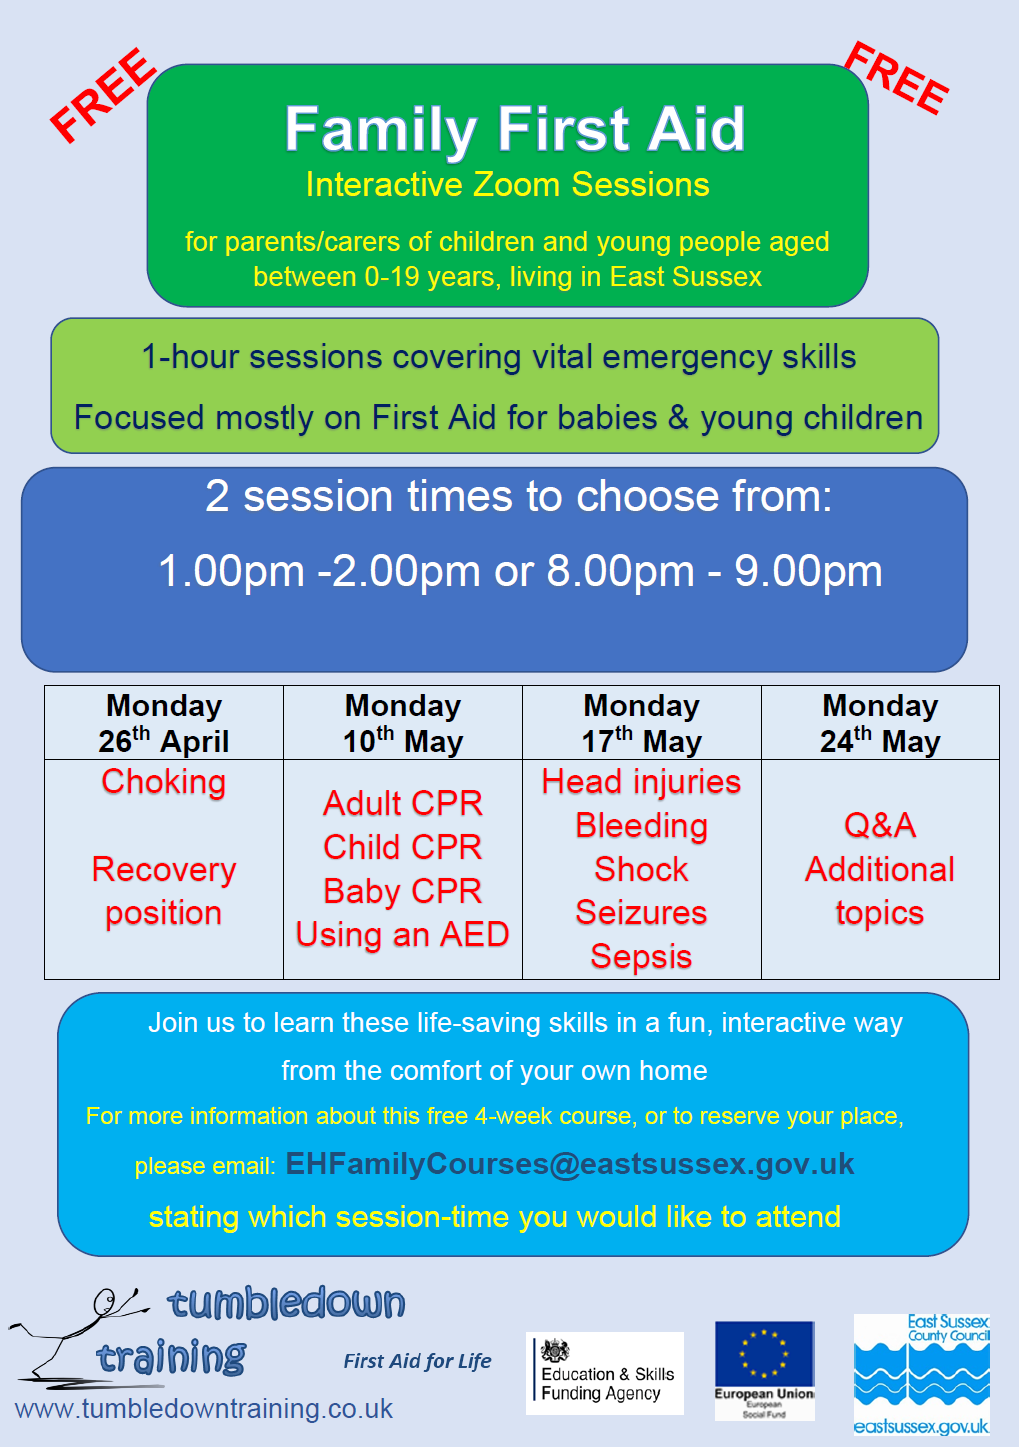 Tumbledown Training – Family First Aid